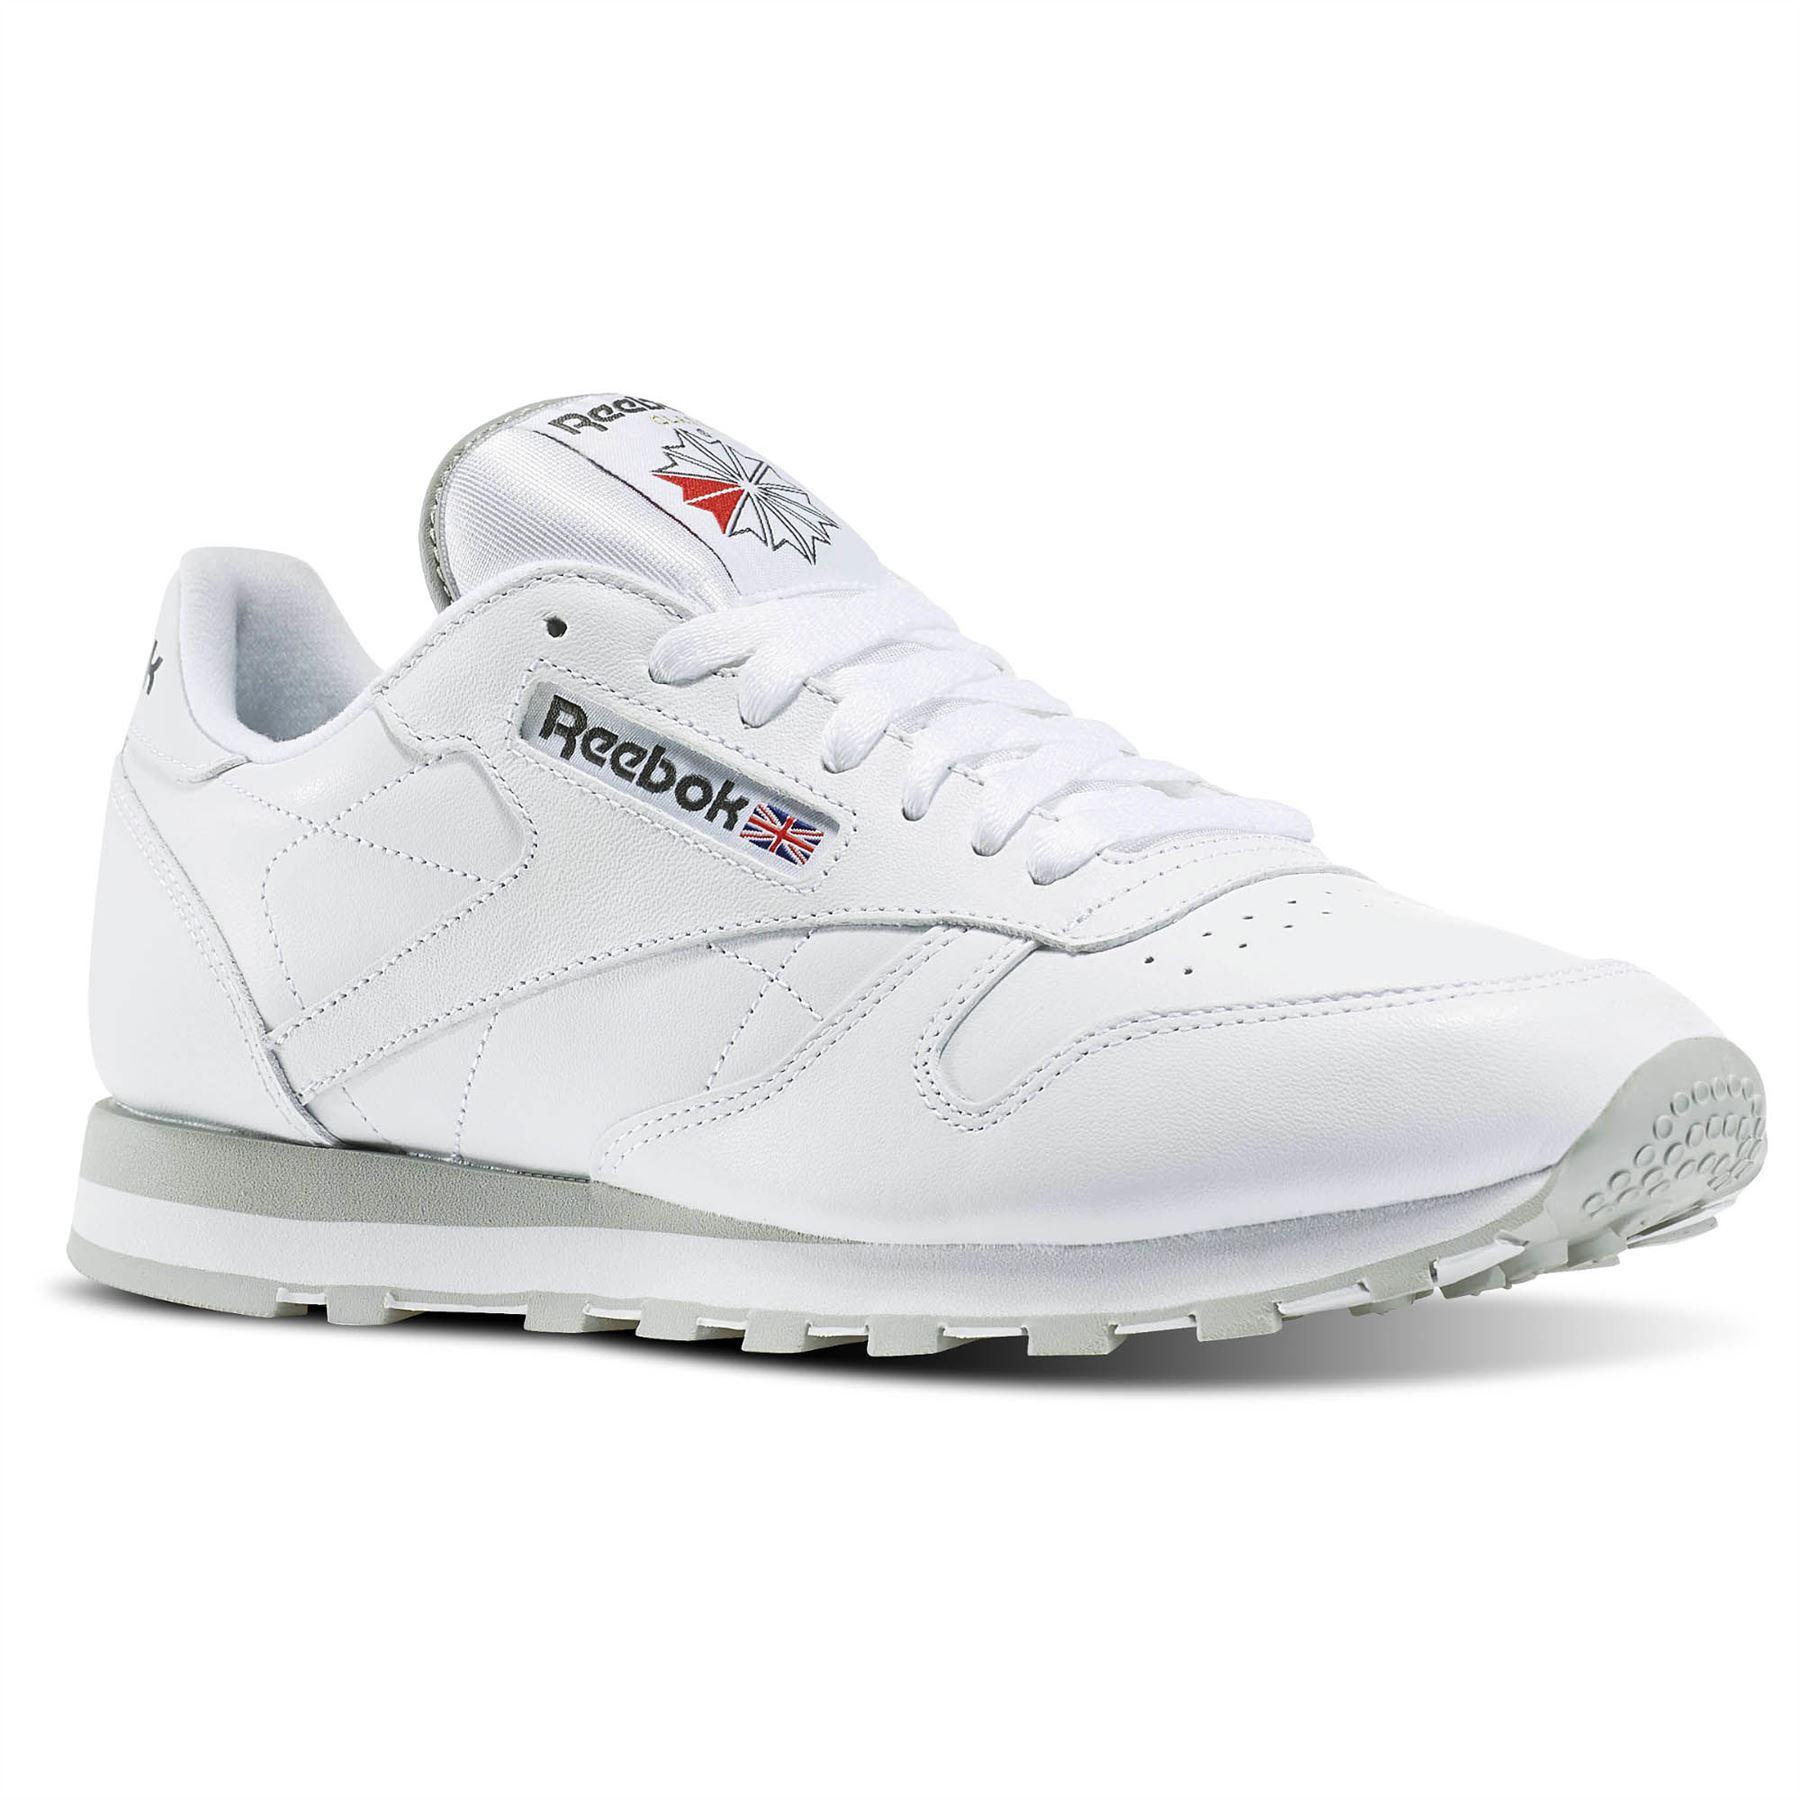 6e5ba5f7bfb5 REEBOK CLASSIC 2214 LEATHER SHOES BACK TO SCHOOL SNEAKERS TRAINERS BRITISH  WHITE